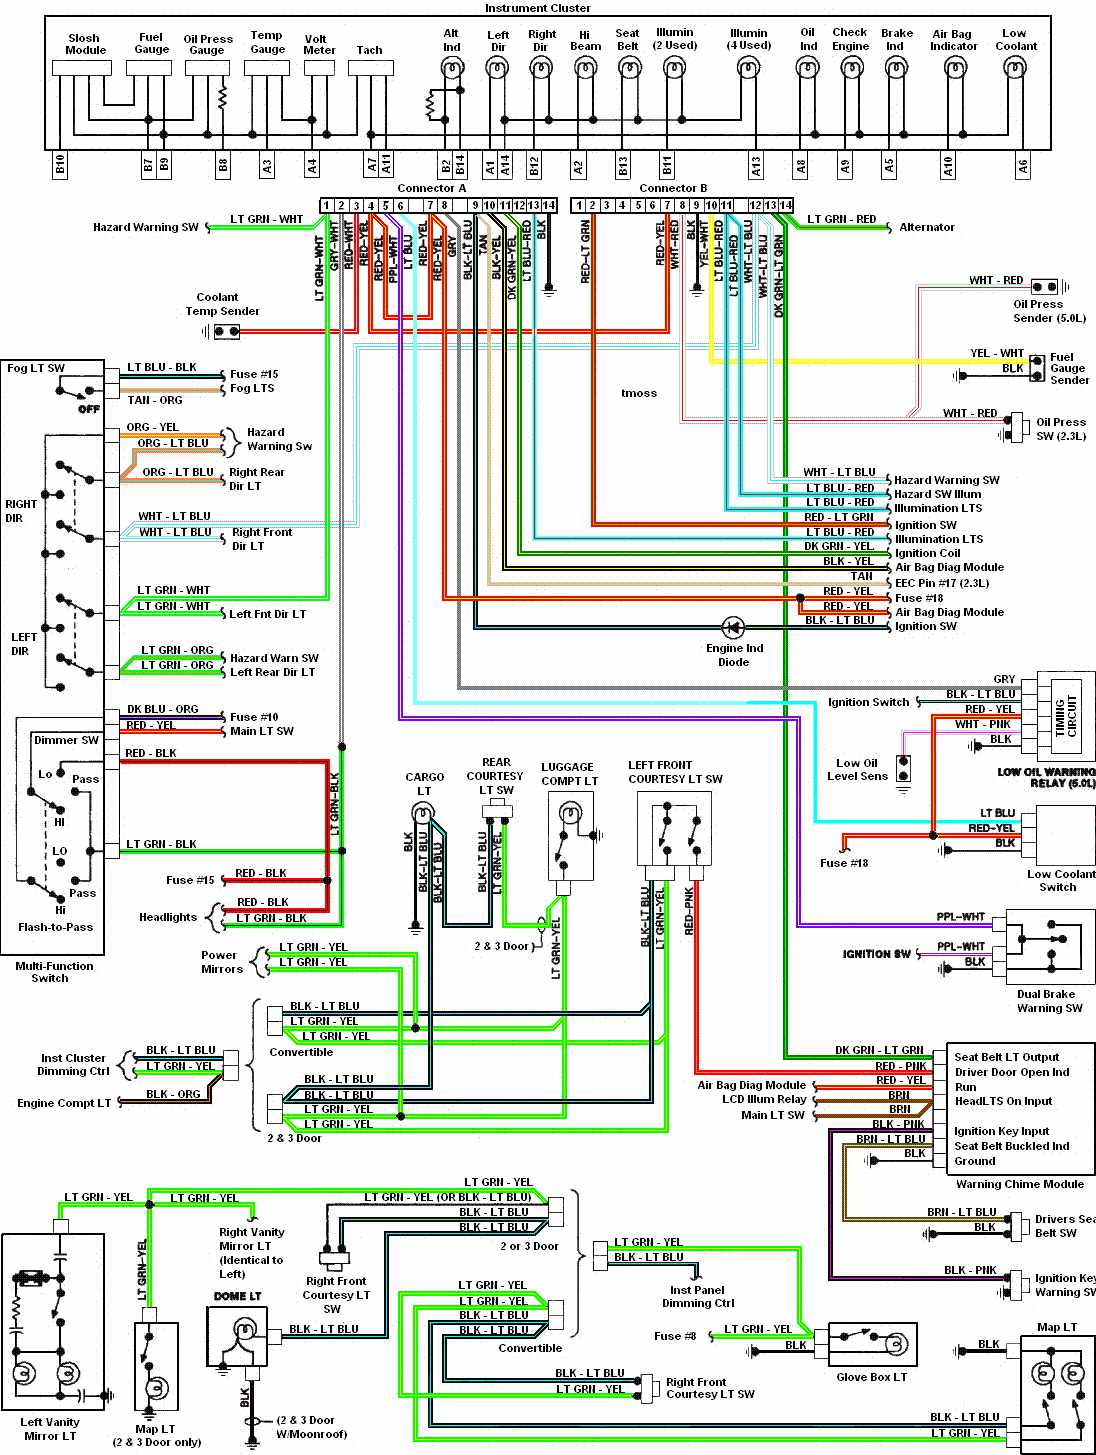 Instrument+Cluster+Wiring+Diagrams+Of+1987+Ford+Mustang+3rd+Generation 1985 ford radio wiring diagram 1983 ford radio wiring \u2022 wiring Chevy Truck Wiring Harness at gsmportal.co